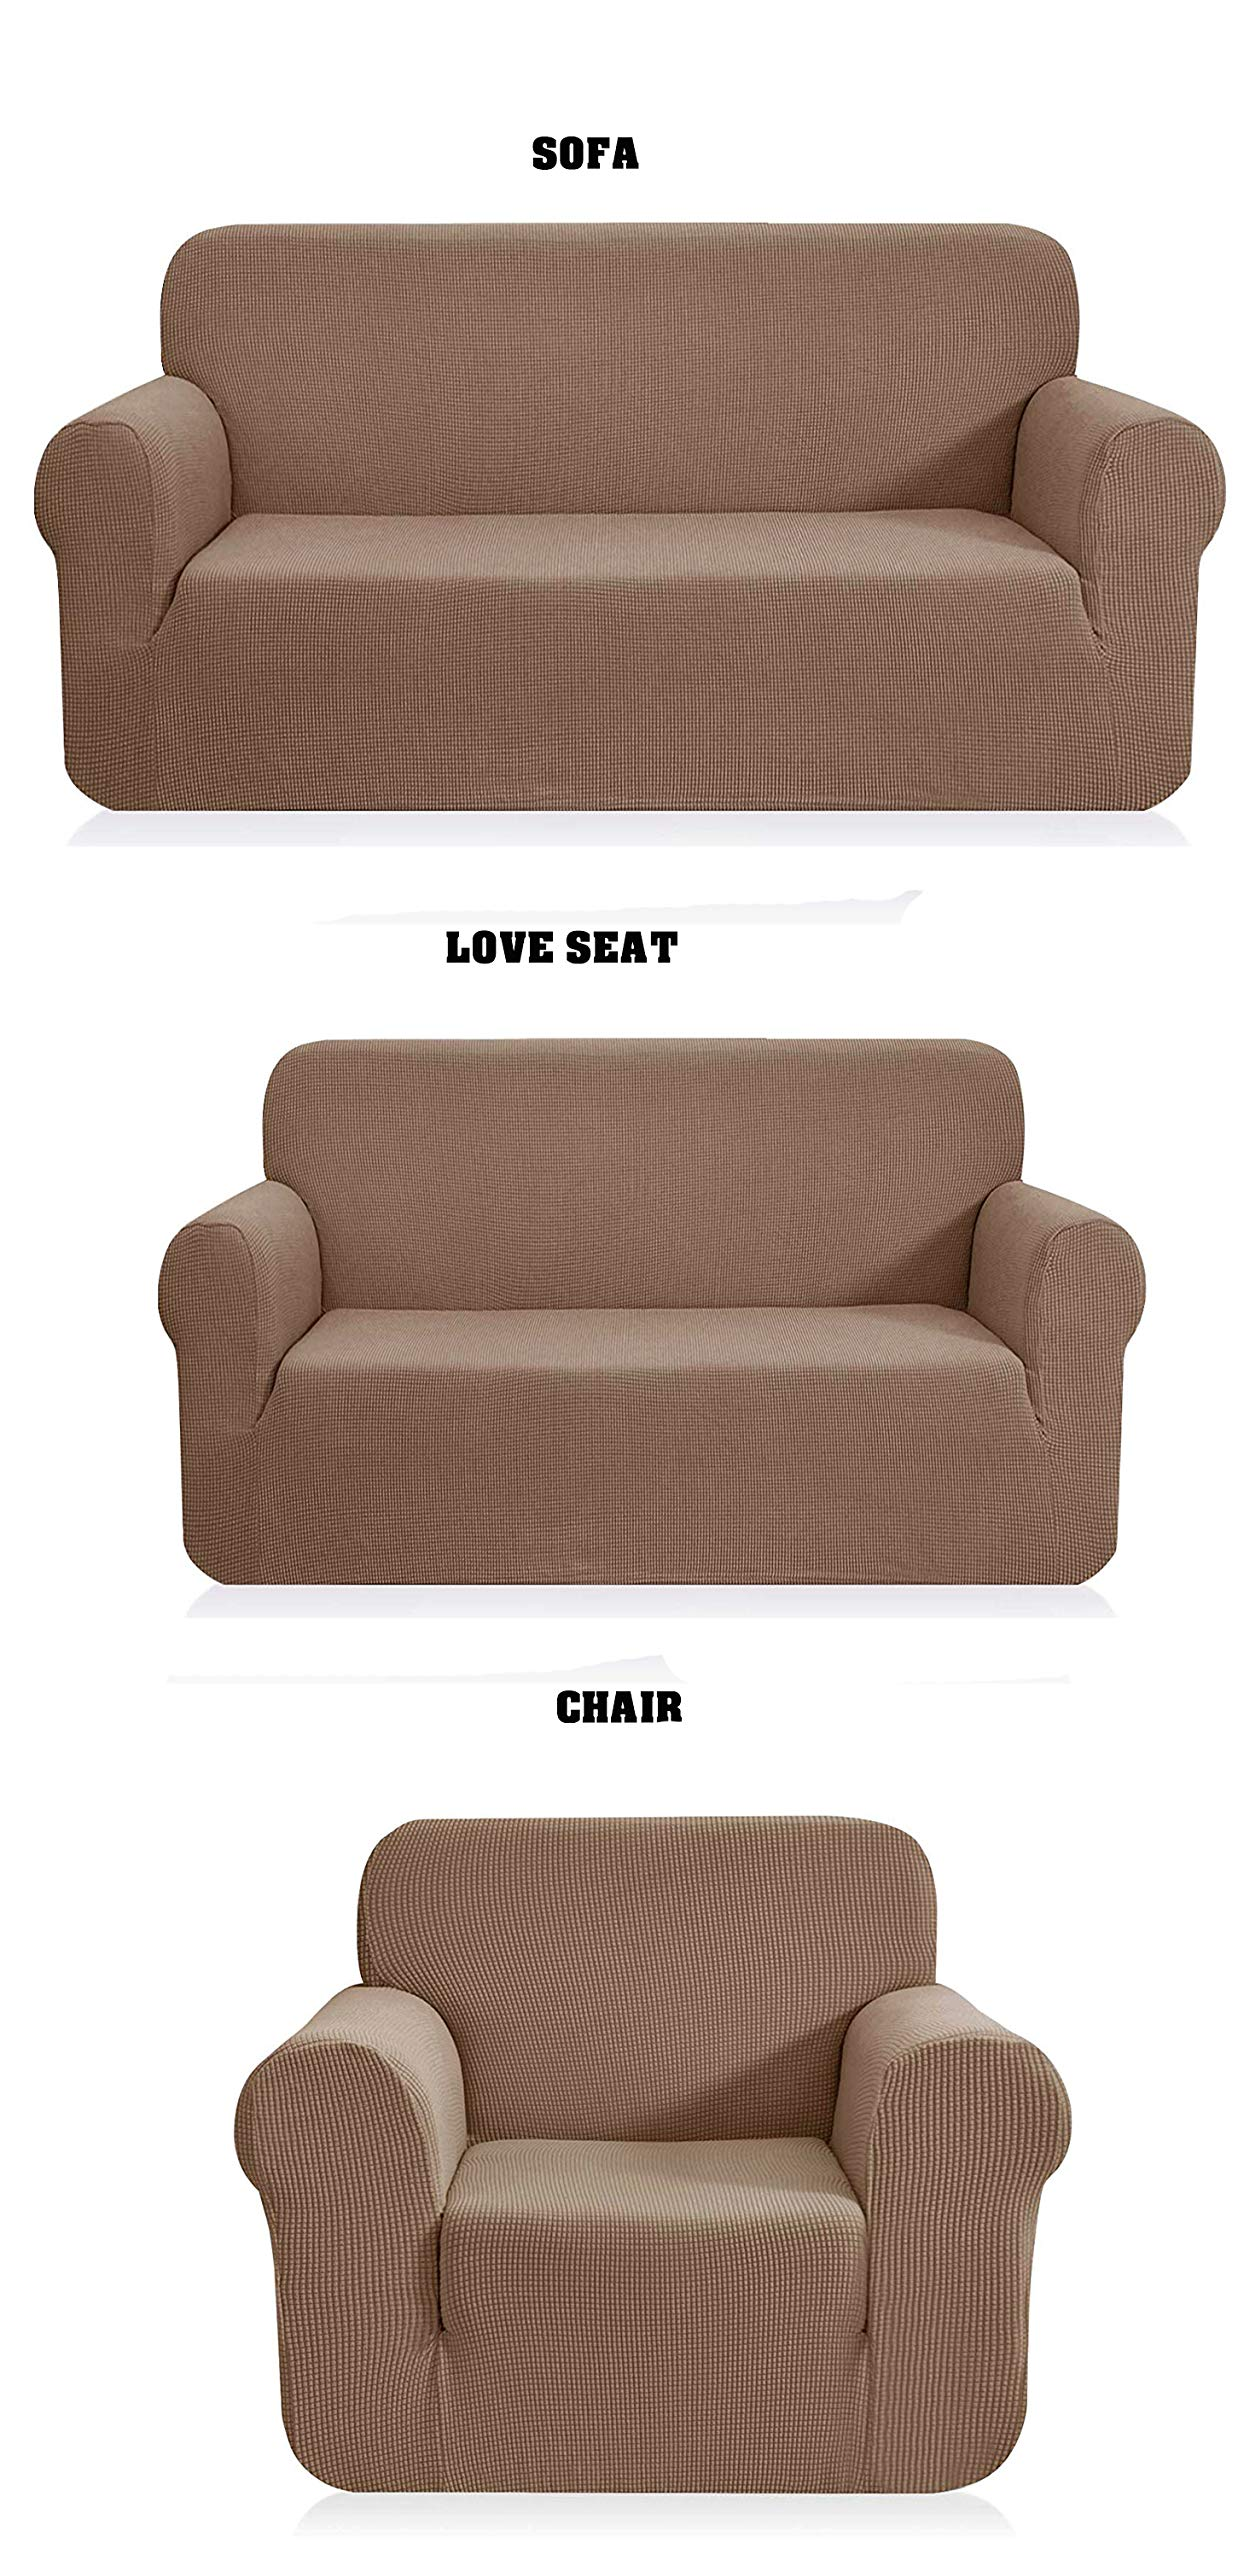 Fancy Linen LLC 3pc Set Sofa + Love Seat + Chair Slipcover Solid Elastic Spandex Stretch to Fit New (Light Brown, Sofa+Love-Seat+Chair) by Fancy